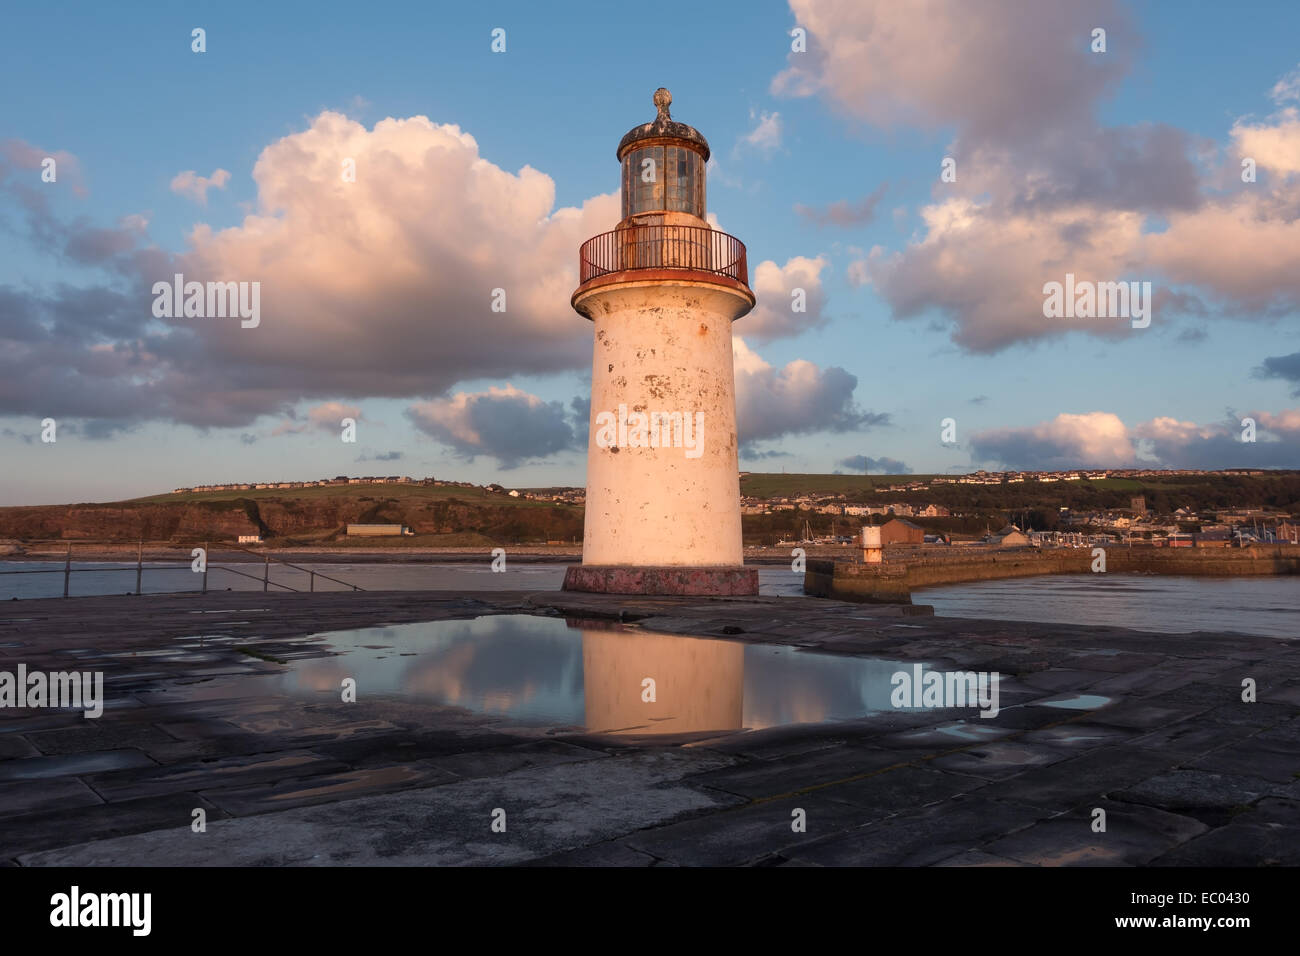 The lighthouse at the end of the breakwater at Whitehaven, Cumbria. - Stock Image